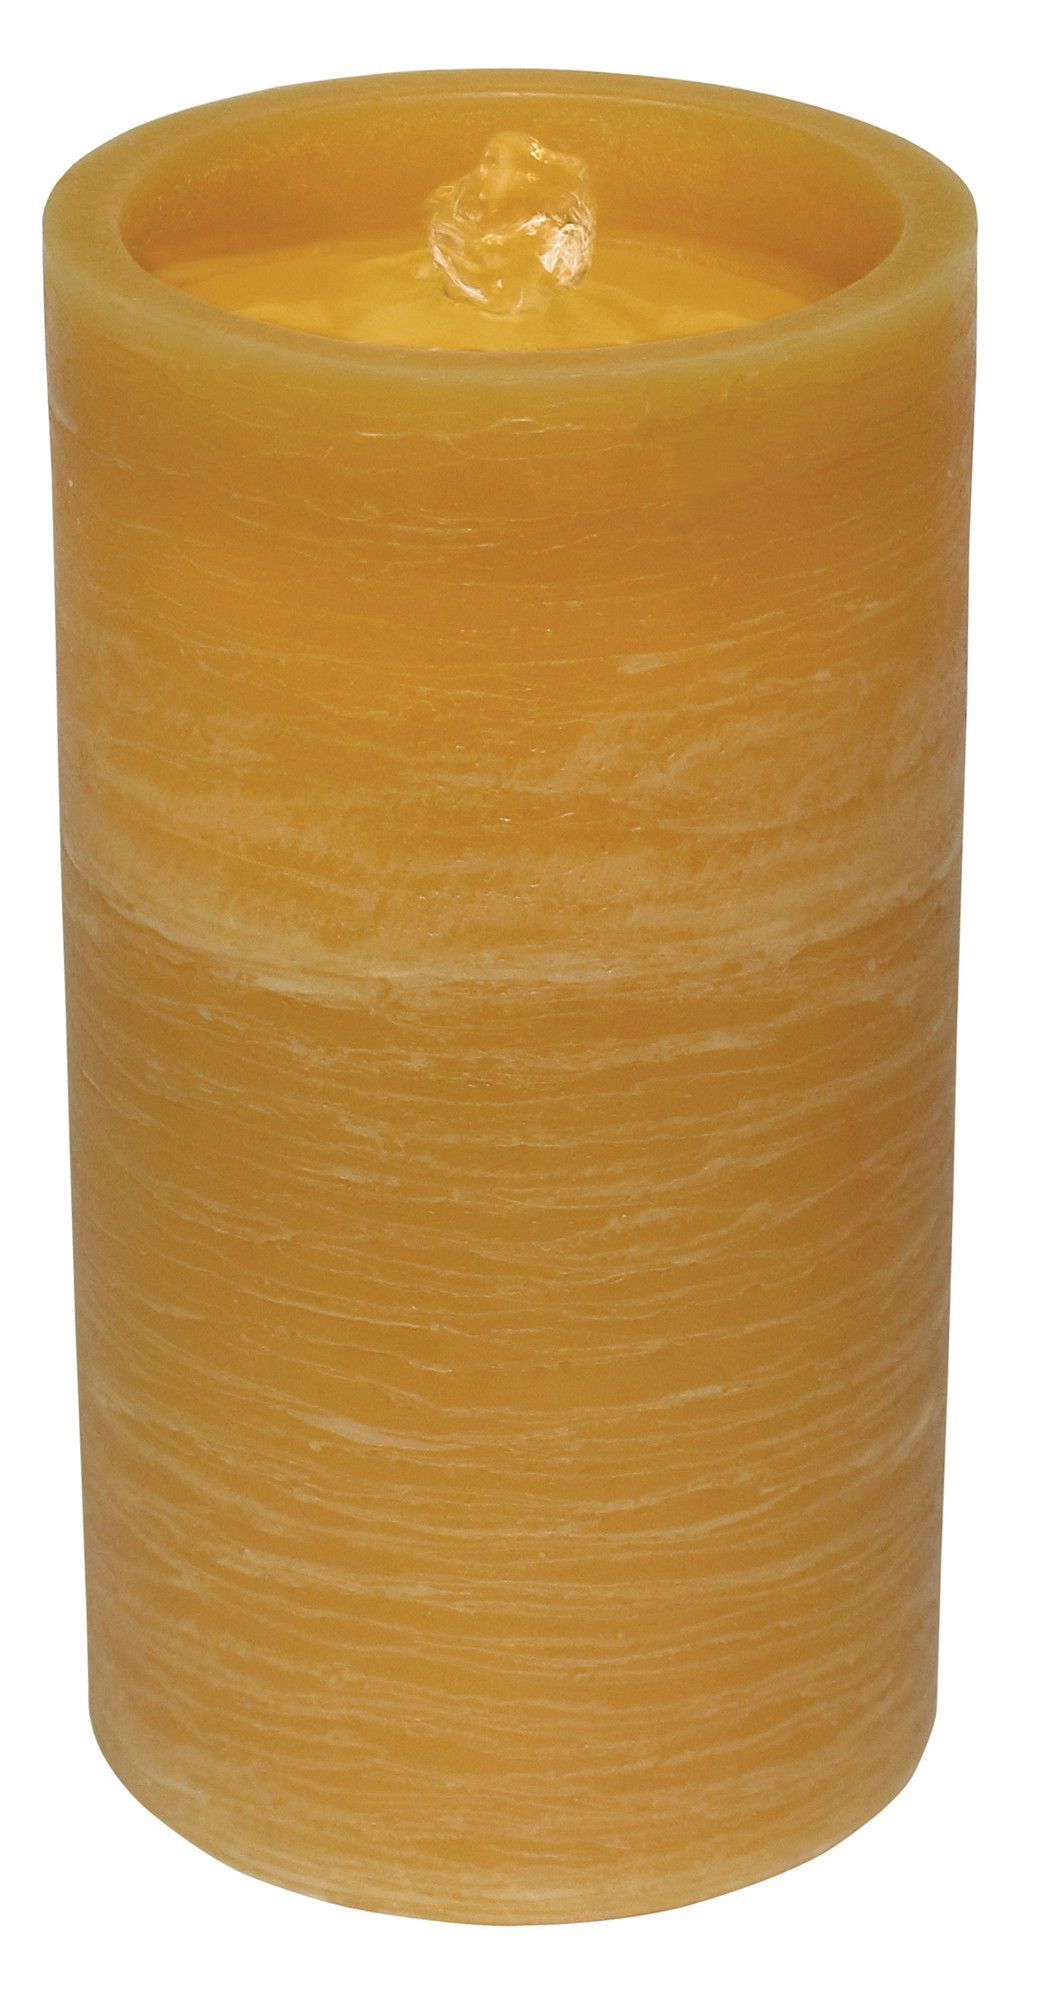 bethlehem lighting. Aquaflame GKI Bethlehem Lighting Flameless Candle H